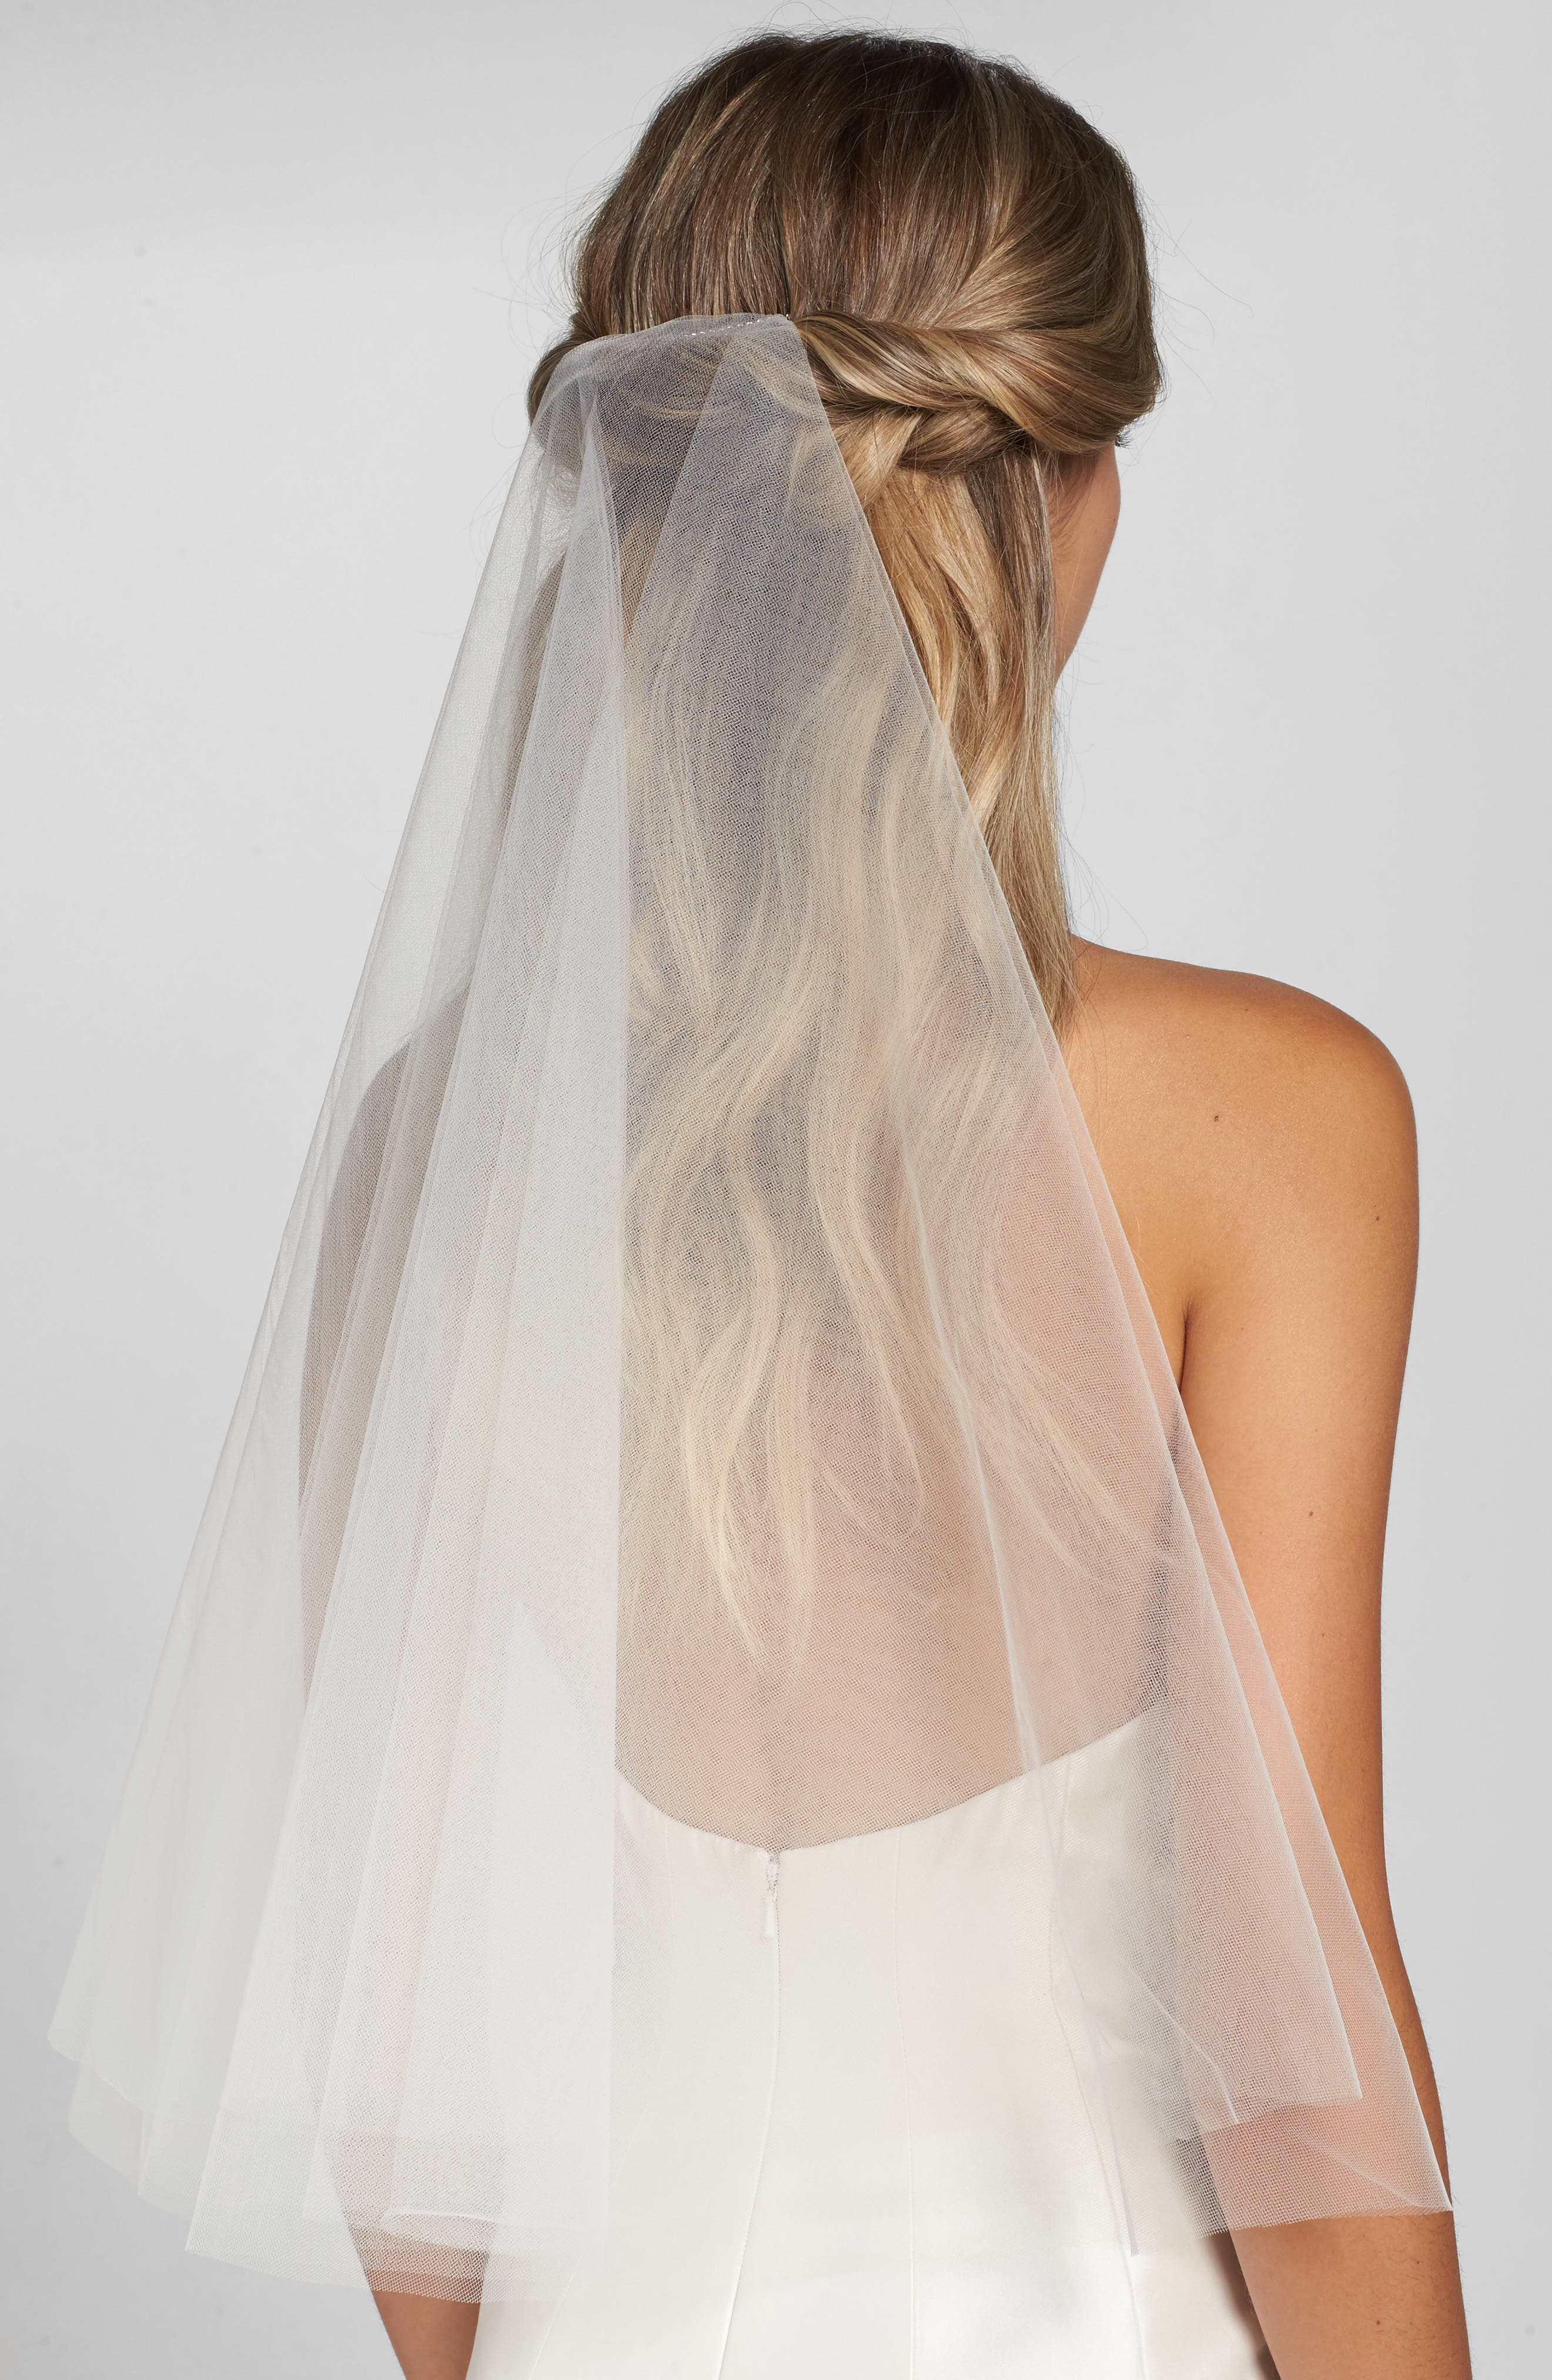 'Madeline' Two Tier Circle Veil,                         Main,                         color, 901